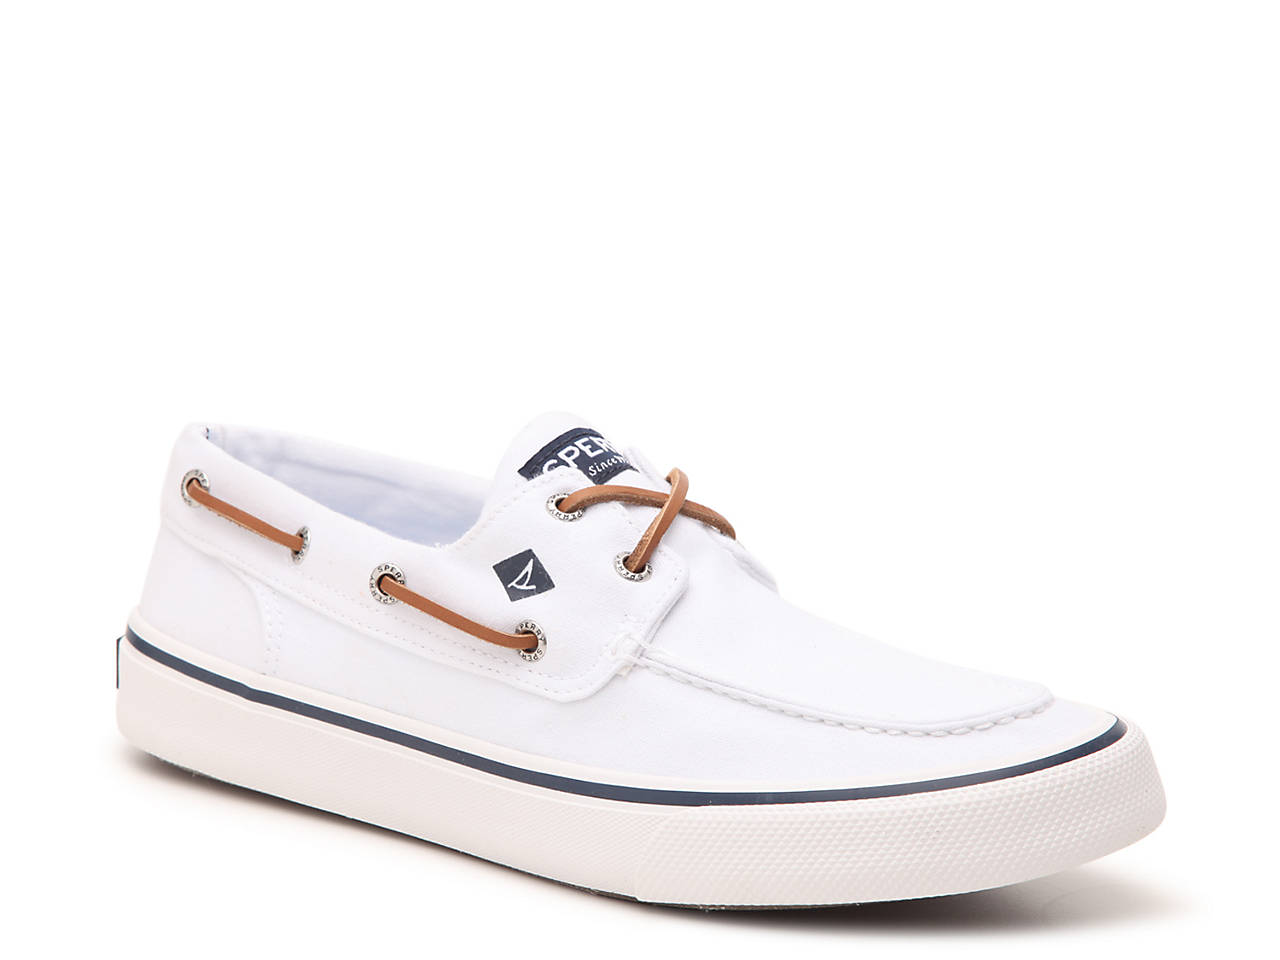 714a3ca78a3 Sperry Top-Sider Bahama II Boat Shoe Men s Shoes